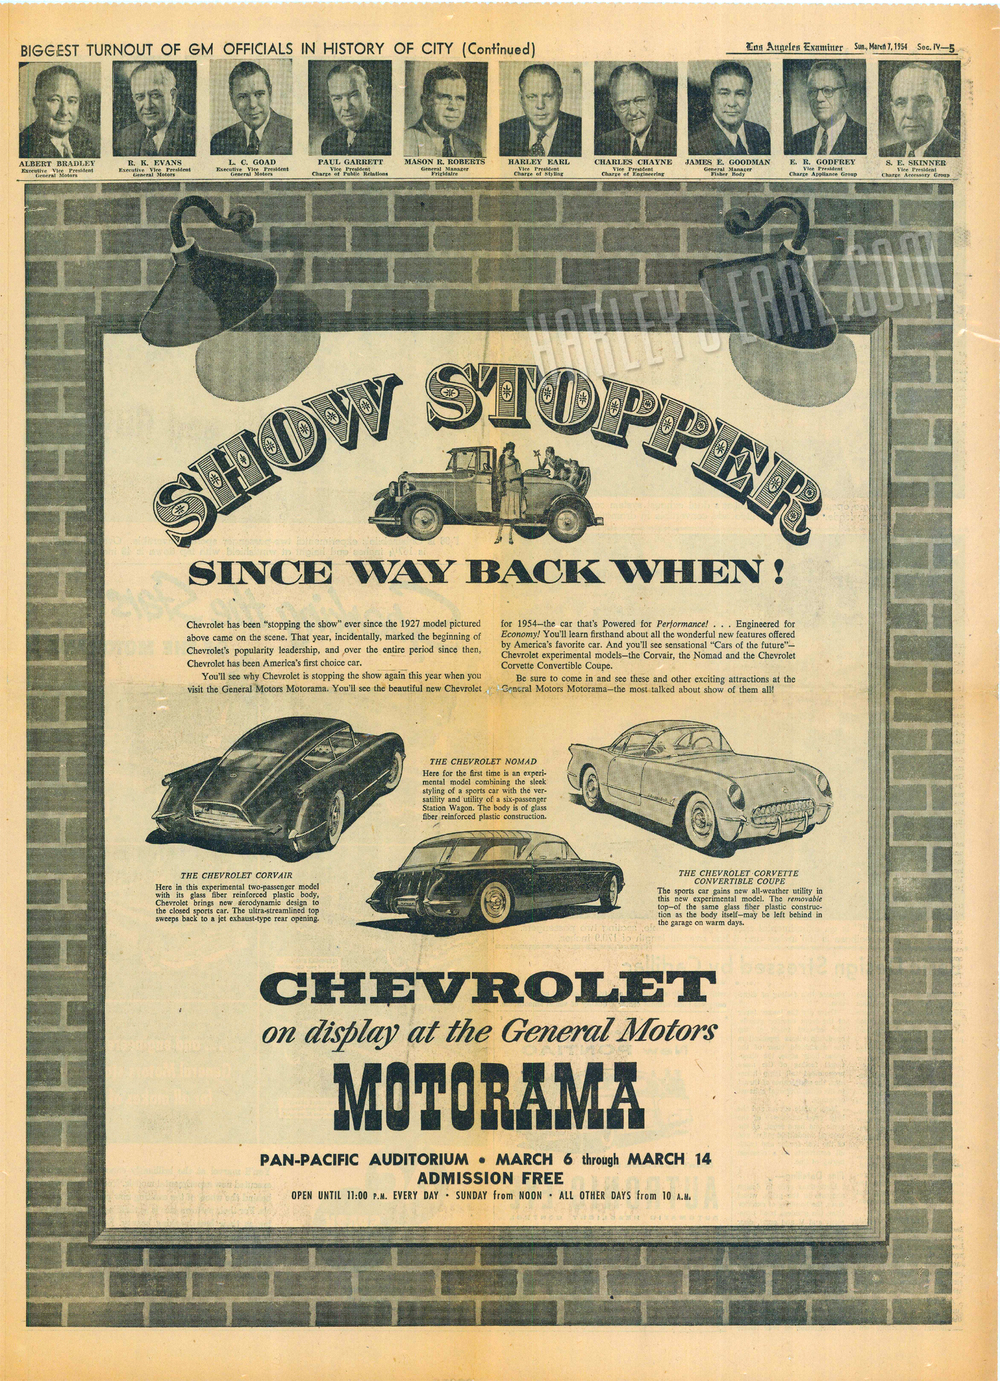 "This full-page ad in the Los Angeles Examiner demonstrates HJE's first Chevrolet car design for the bowtie division back in '27, with flapper girls, and 26-years later he's releasing modern well-engineered vehicles most Americans find, ""drop-dead gorgeous"" and are a quantum leap from any production cars made in the 1920s!"